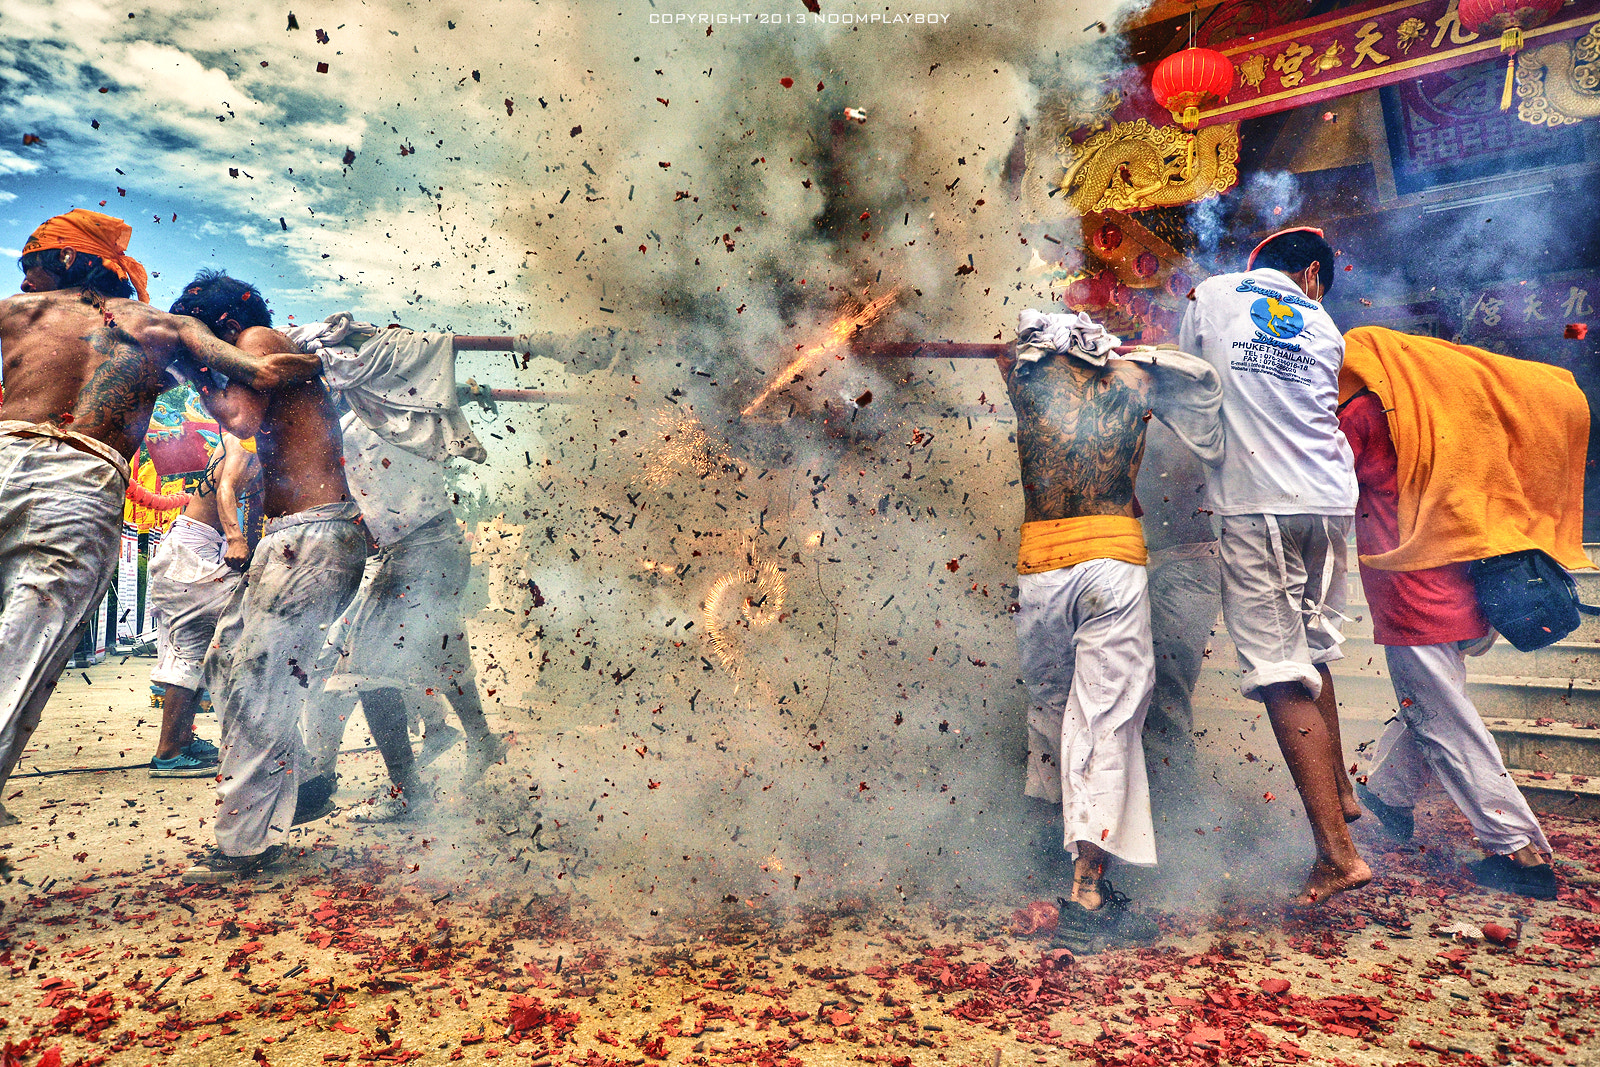 Photograph Phuket Vegetarian Festival in Thailand by noomplayboy  on 500px